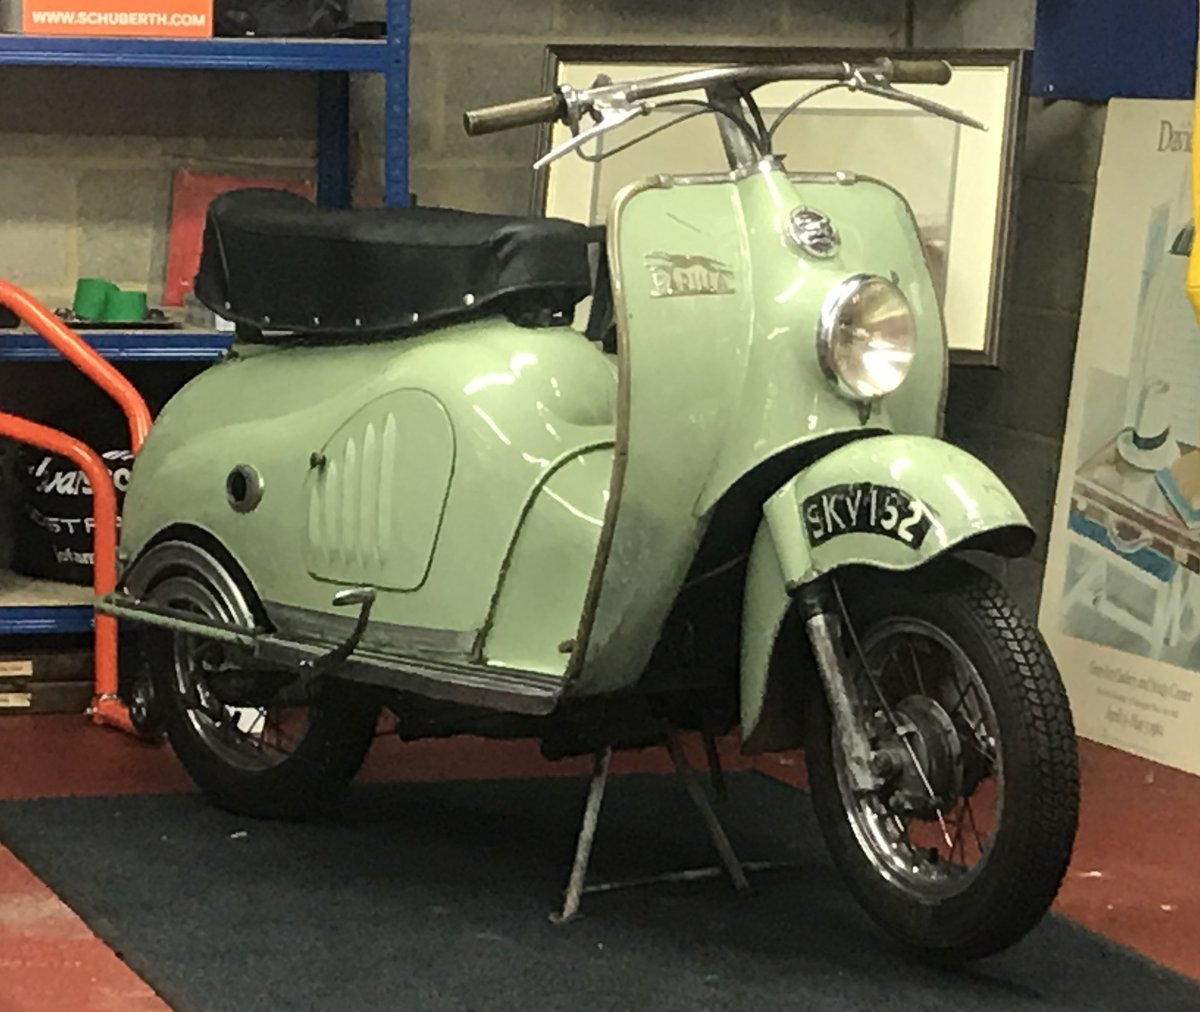 1956 MOTO PARILLA LEVRIERE (GREYHOUND) SCOOTER For Sale (picture 6 of 6)